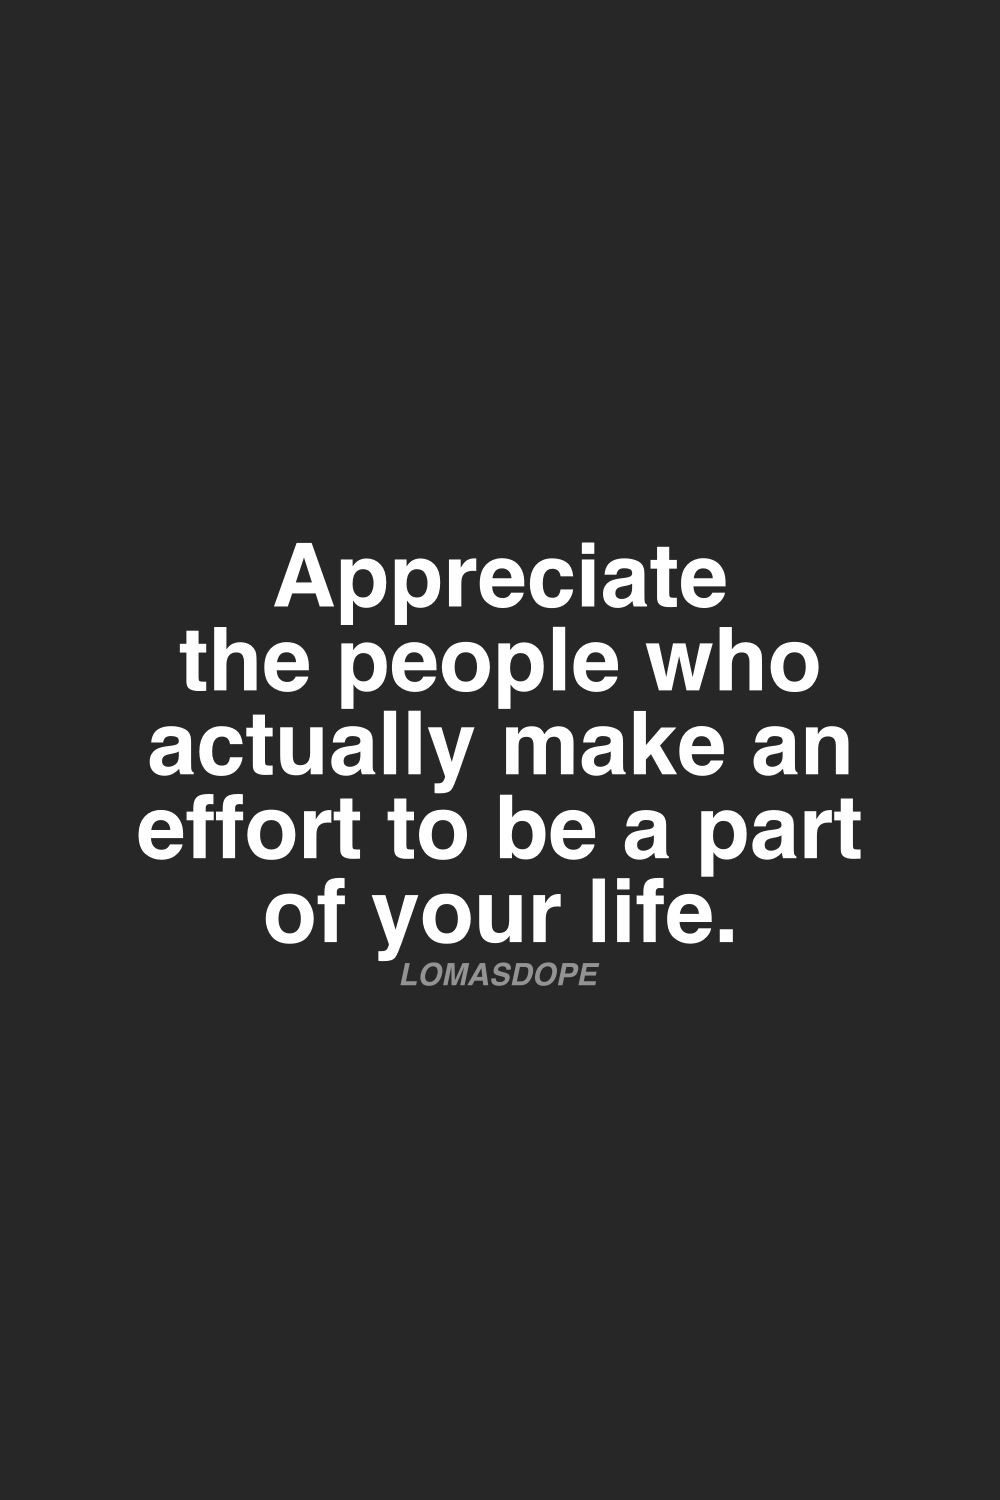 Appreciate The People Who Actually Make An Effort To Be A Part Of